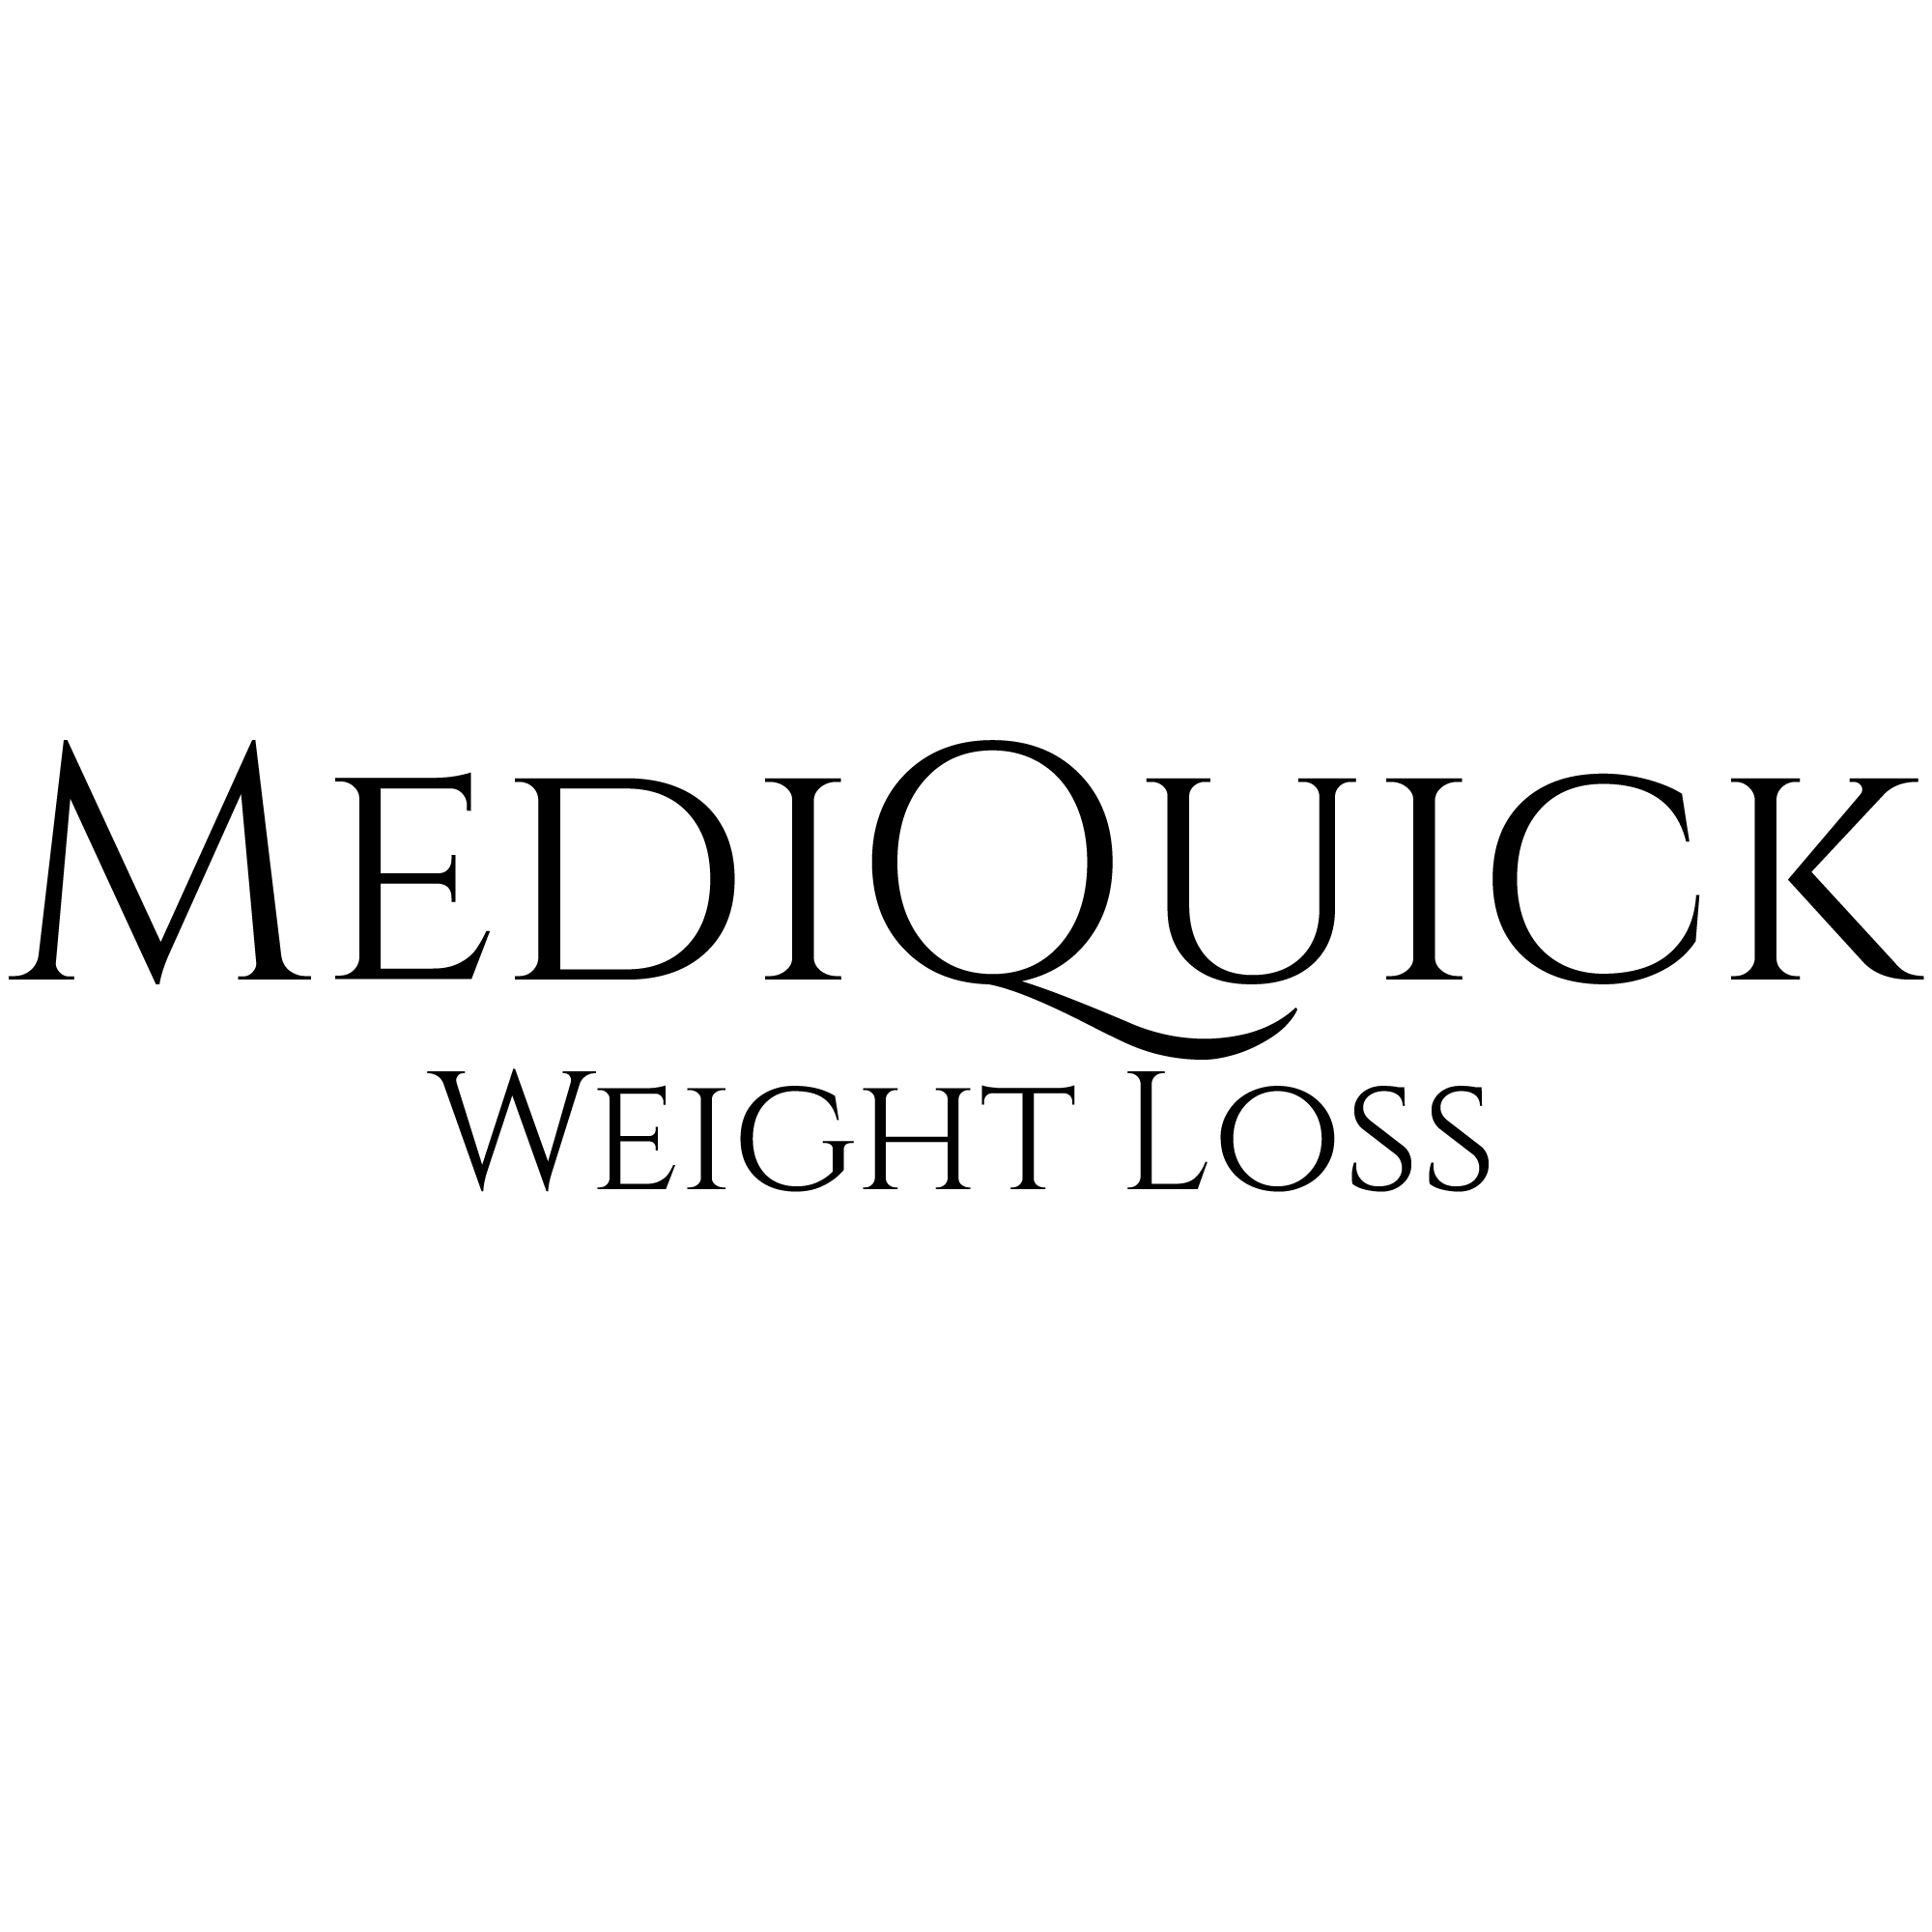 Mediquick Weight Loss Center About Lose Weight Fast Meal Planner